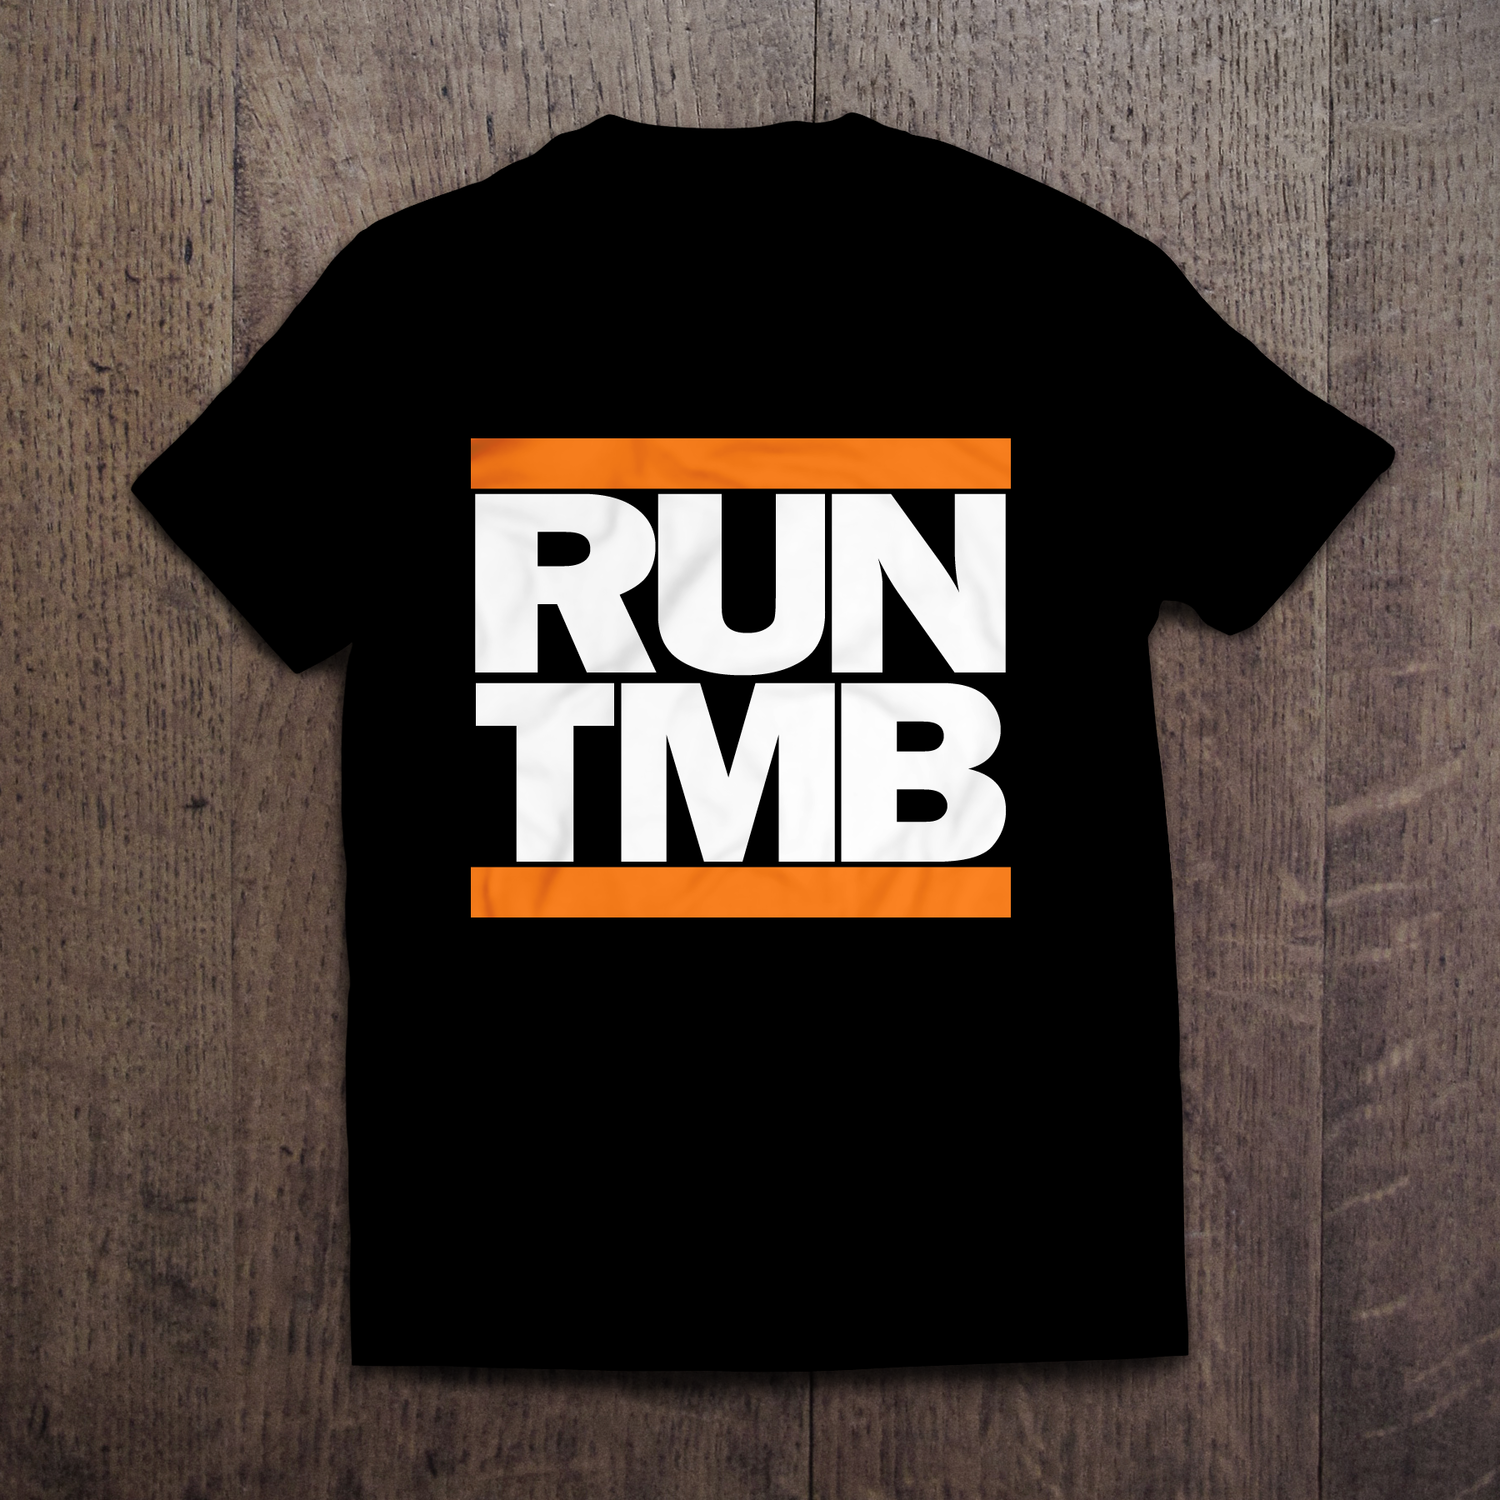 RUN TMB Tshirt